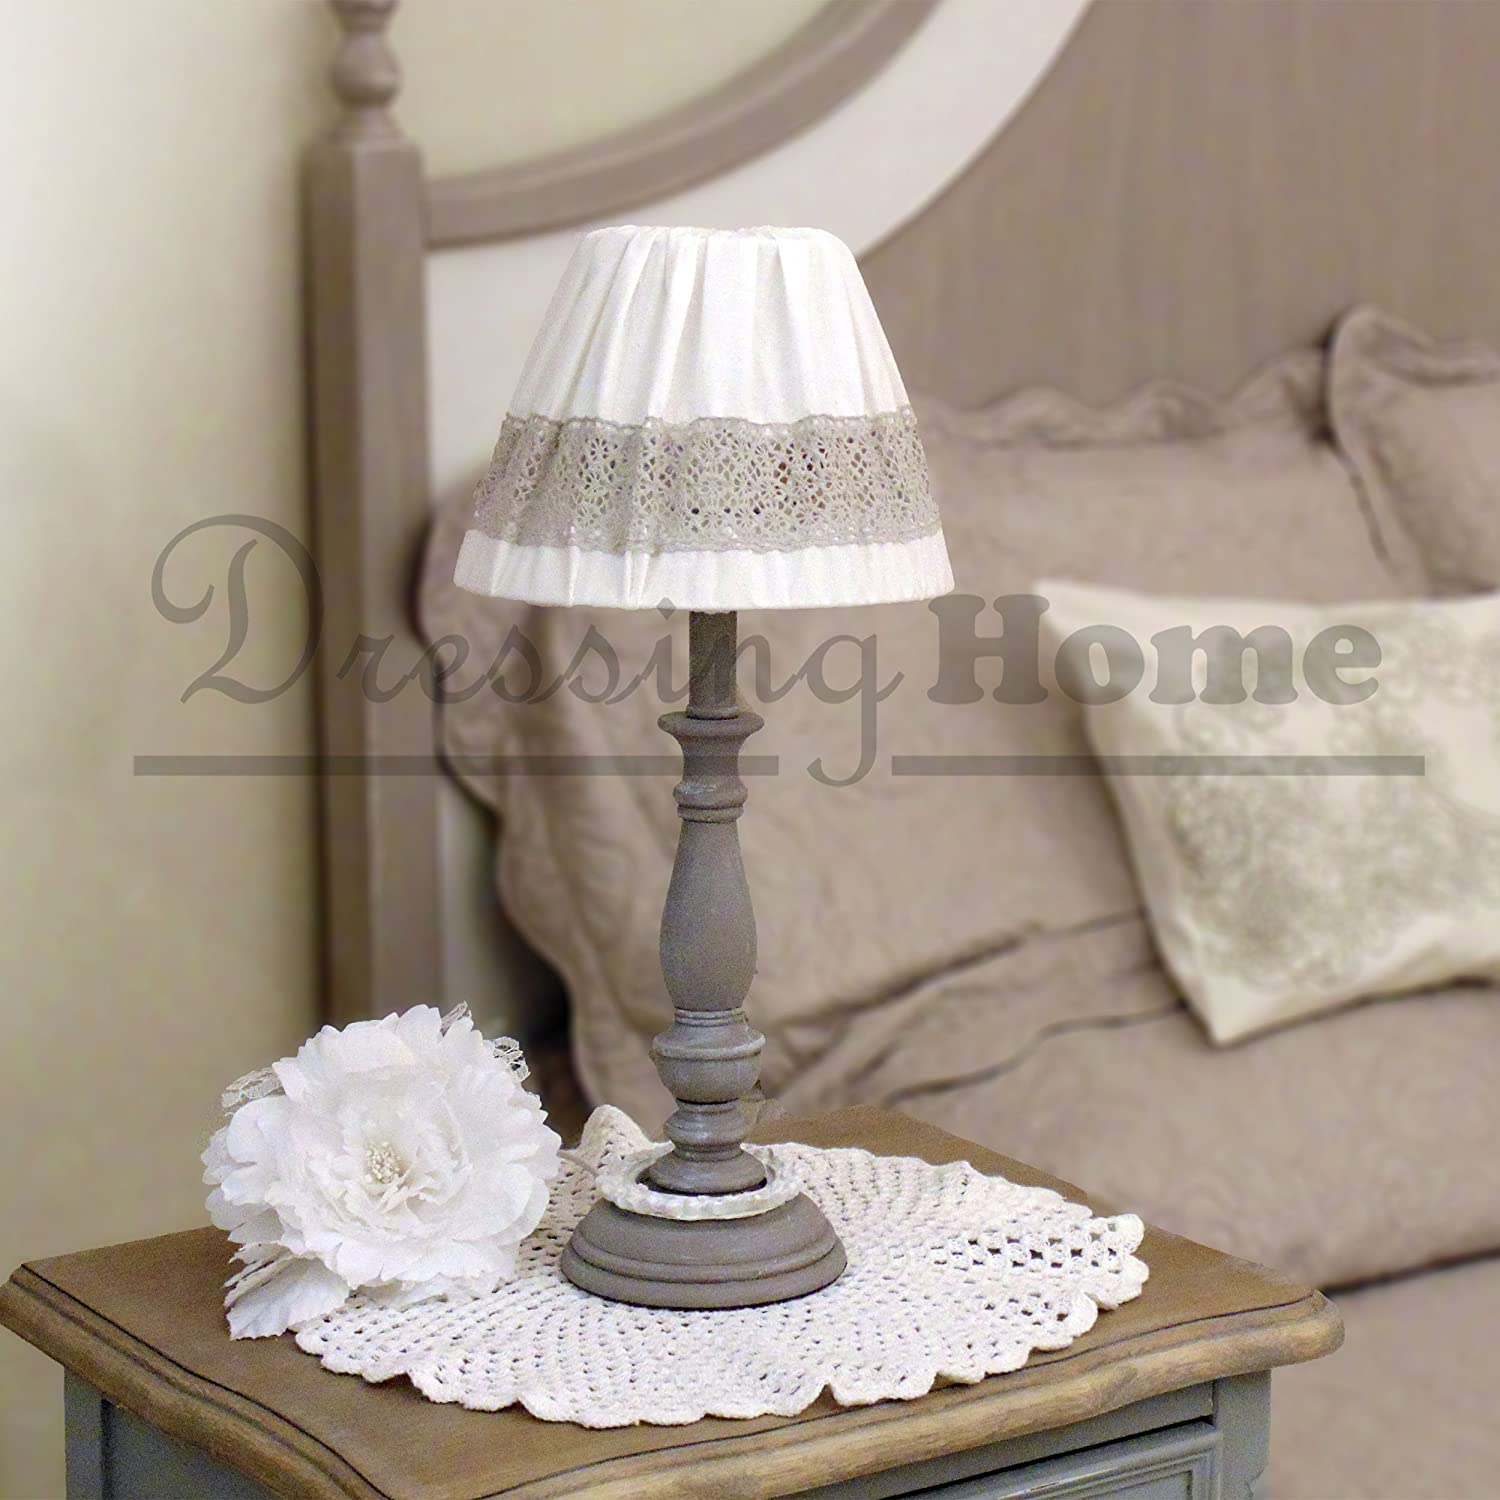 lampe de chevet anglais ces abatjour doivent rejoindre des lampes de chevet en bronze patines. Black Bedroom Furniture Sets. Home Design Ideas